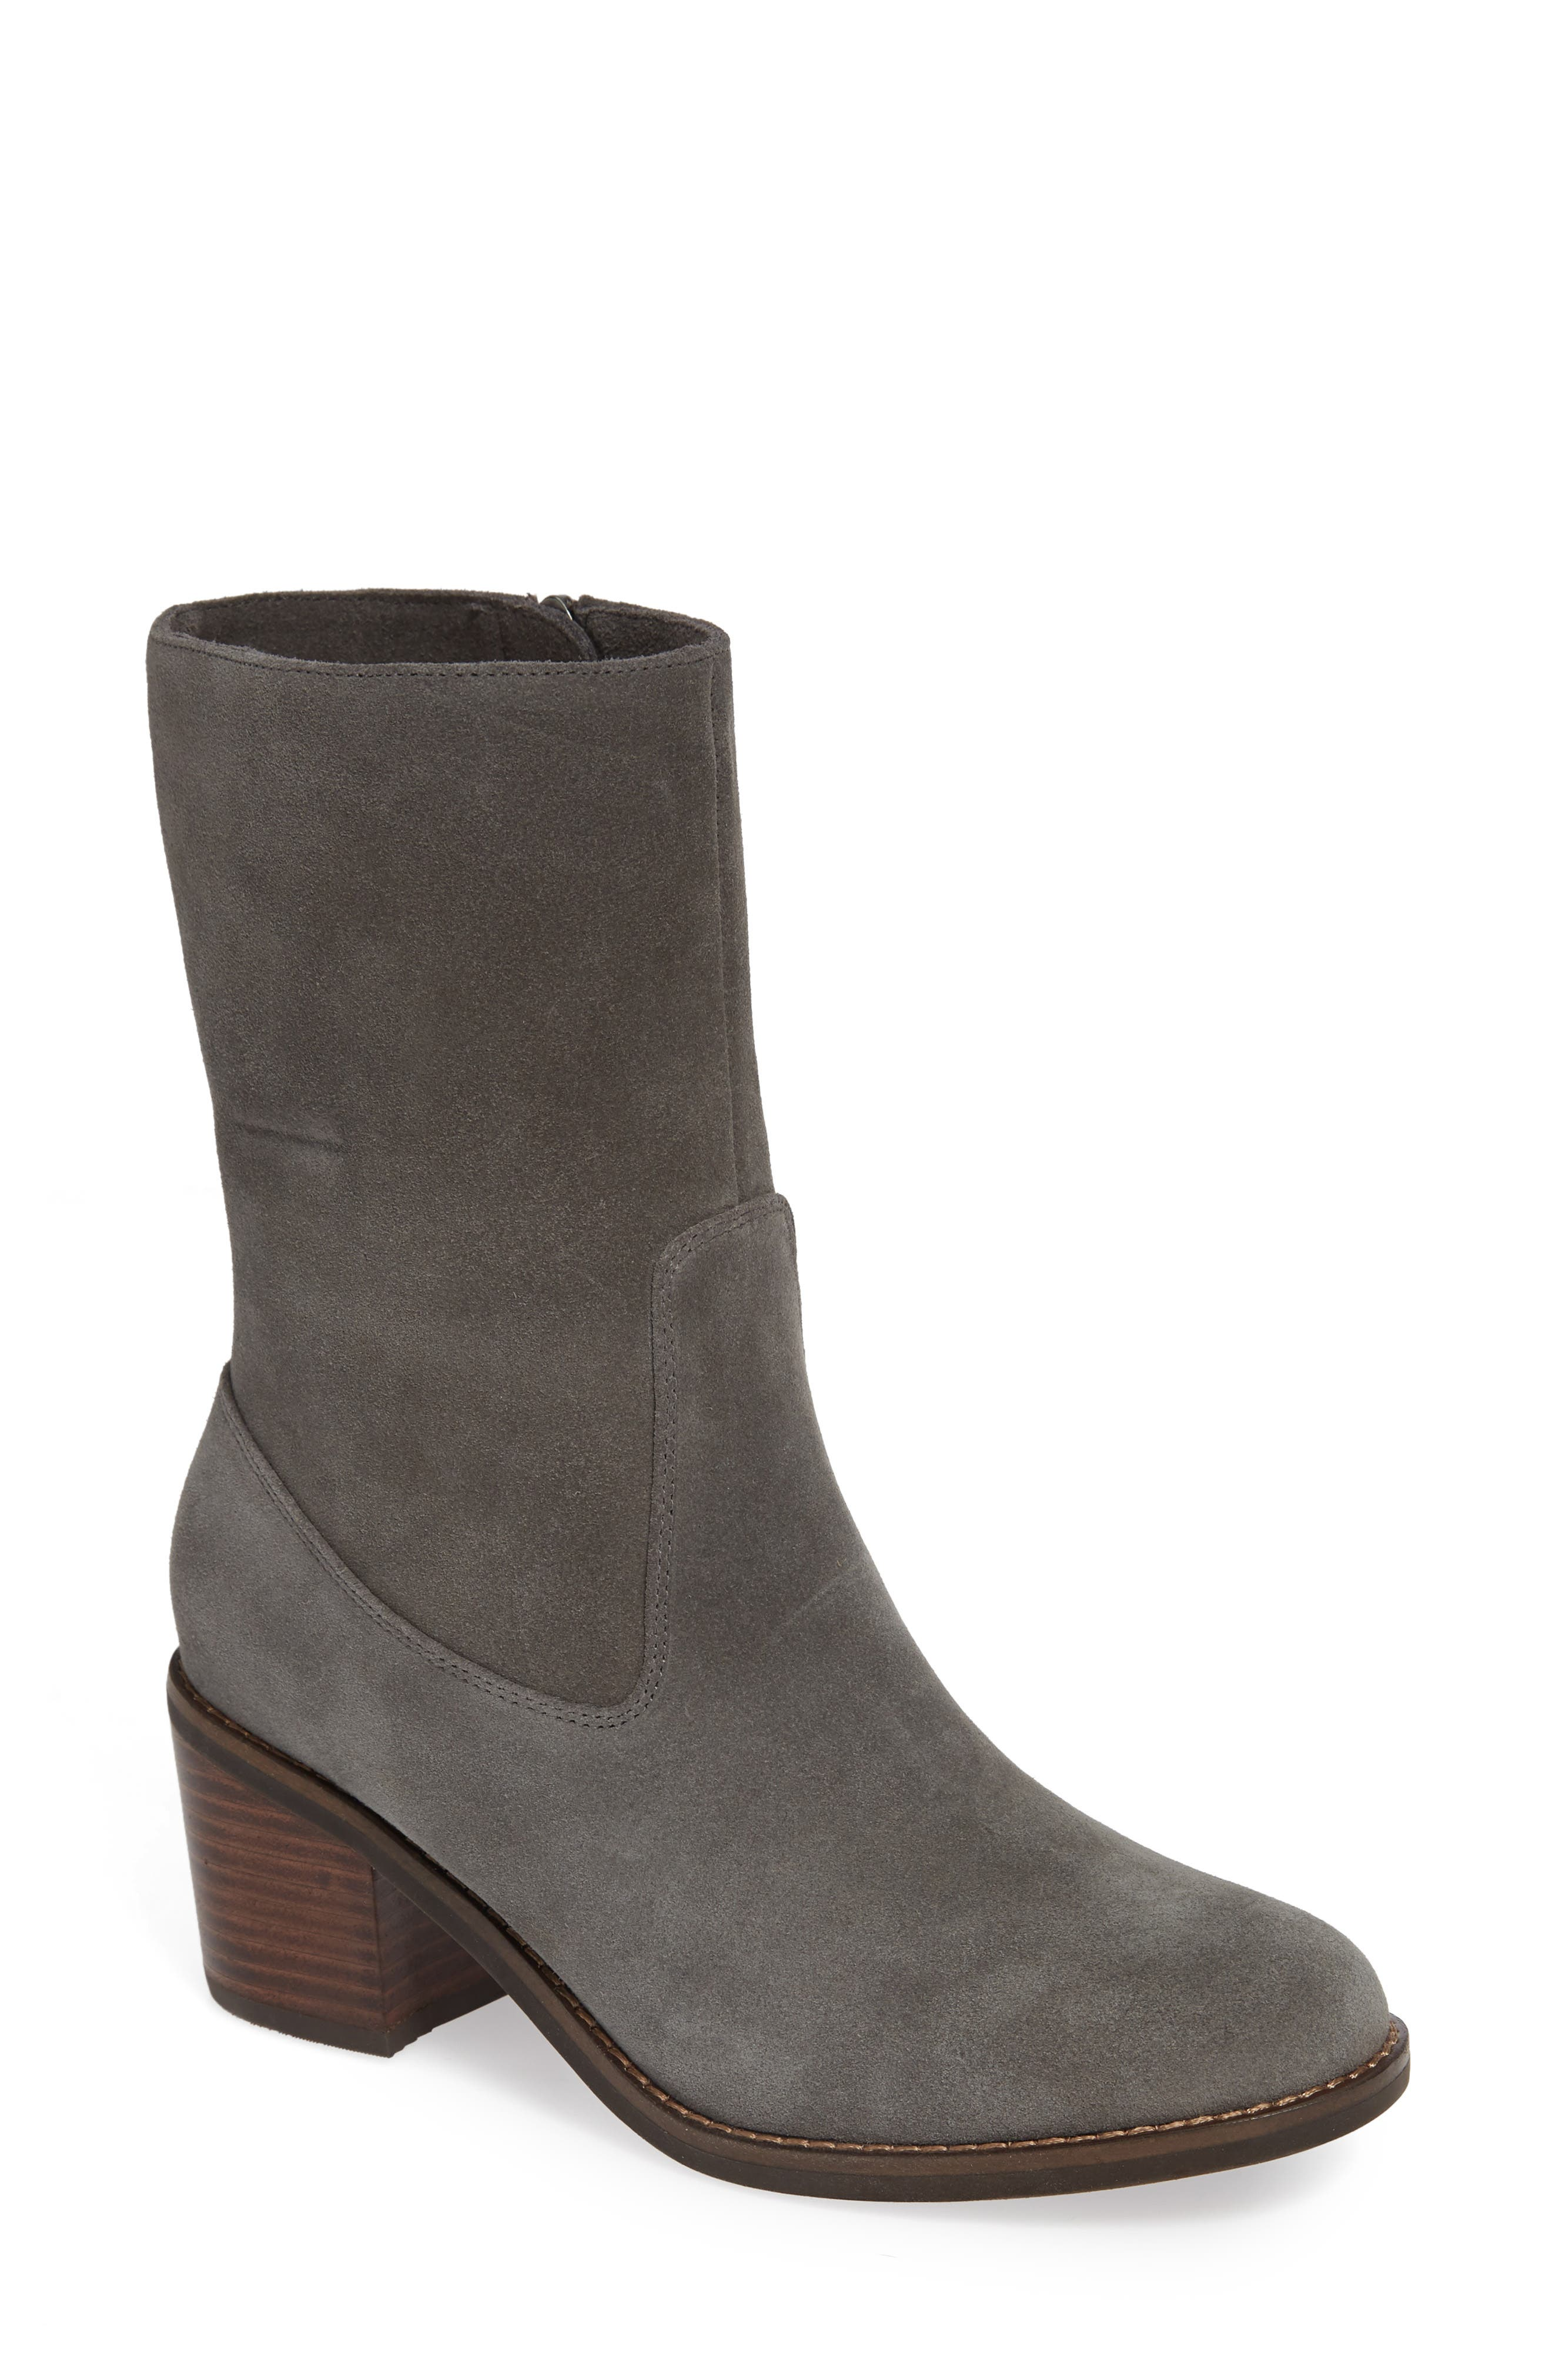 GENTLE SOULS BY KENNETH COLE,                             Verona Bootie,                             Main thumbnail 1, color,                             020